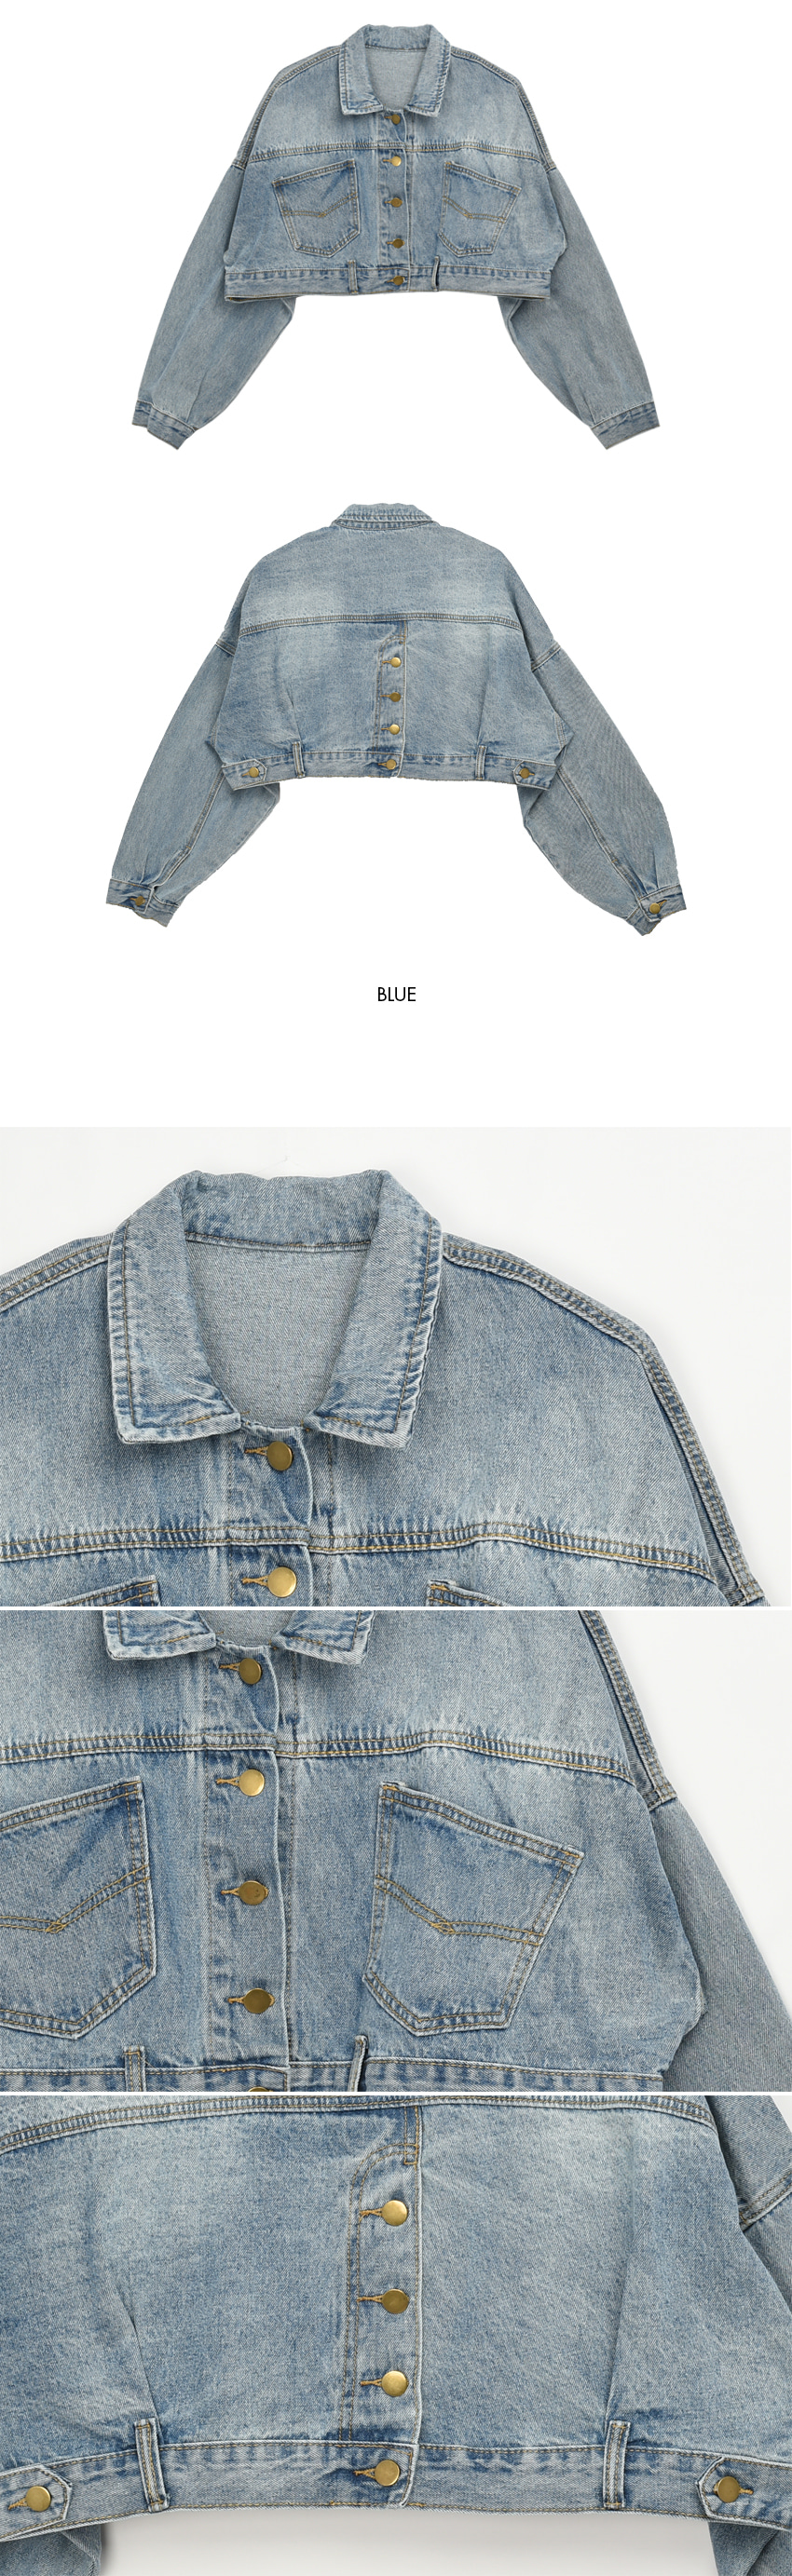 Buying denim short jacket